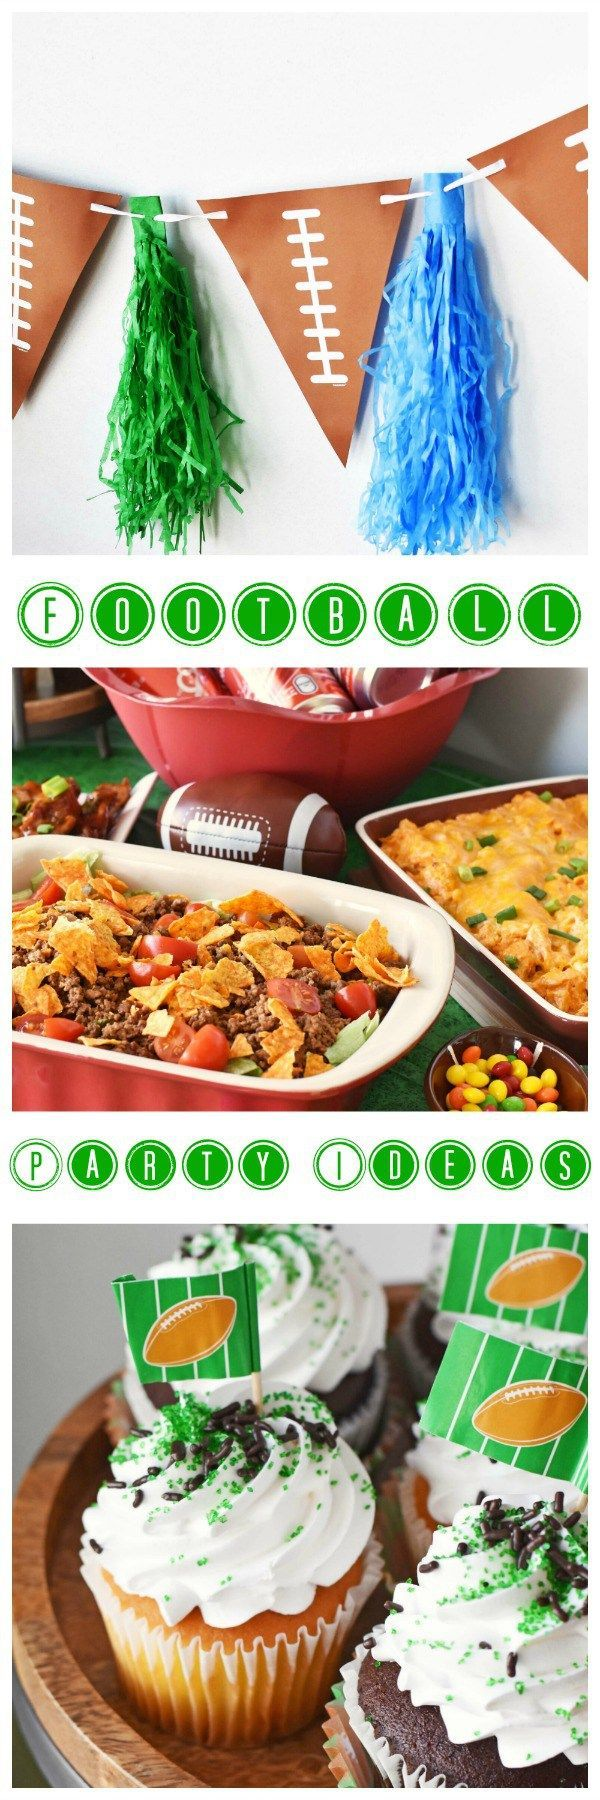 Get Game Day Football Tailgate party ideas and a recipe for Spicy Honey BBQ wings & more. Football party decor ideas and menu plans.